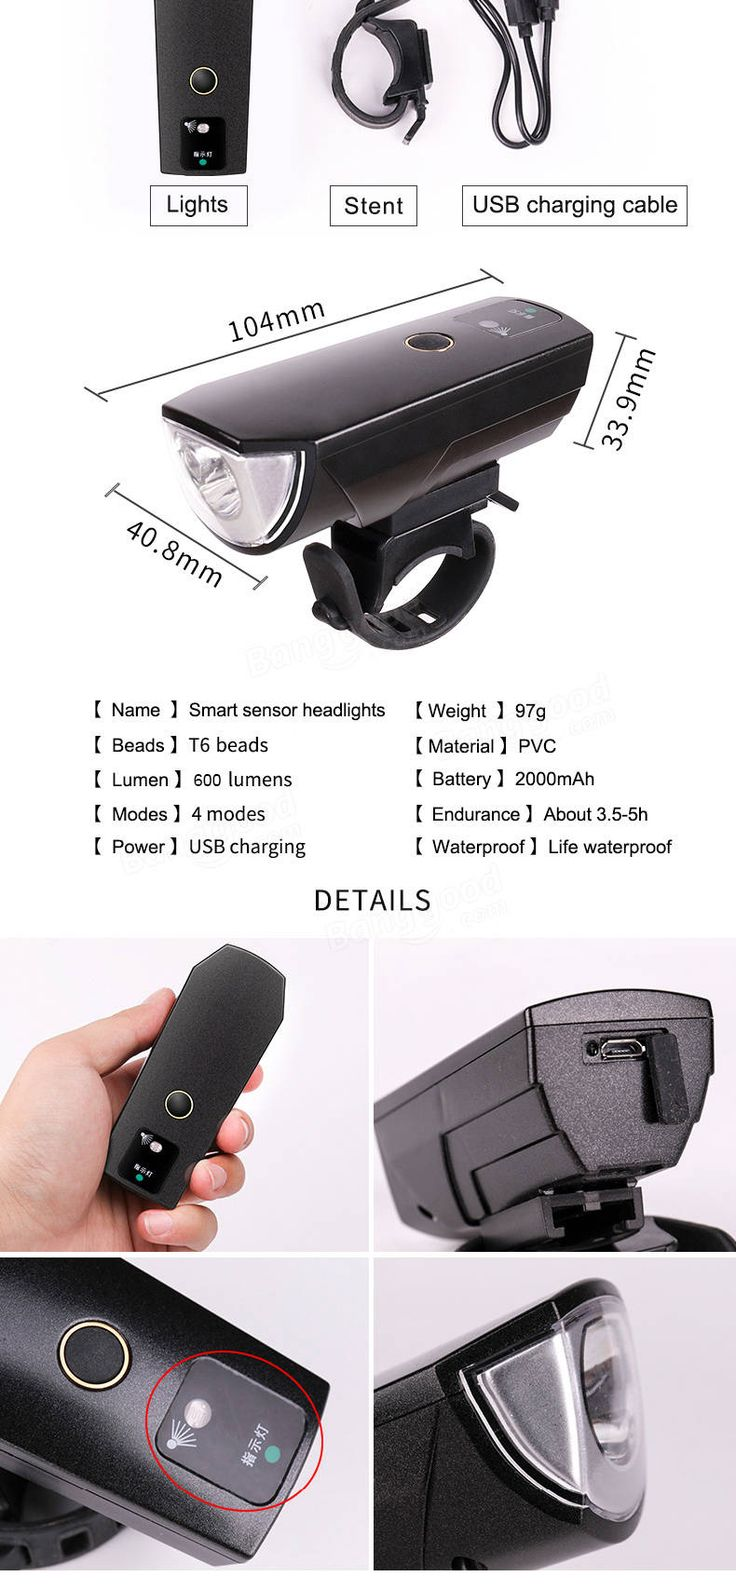 XANES SFL02 600LM T6 Smart Induction Bicycle Light IPX4 USB Rechargeable 80° Large Flood Light